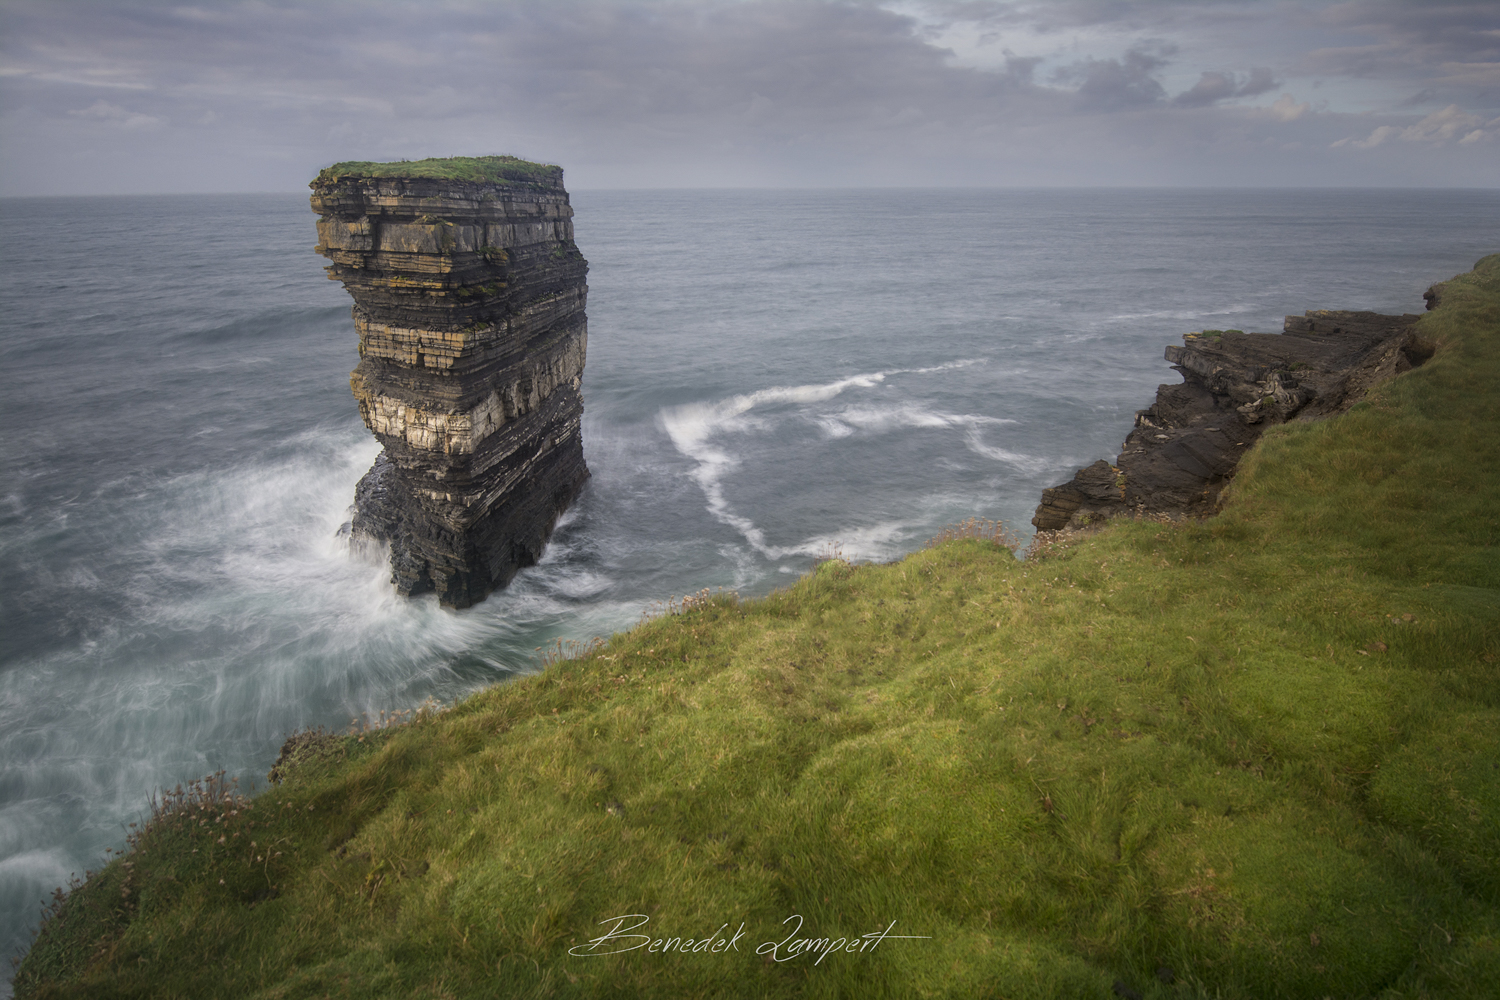 benedek_lampert_downpatrick_head.jpg